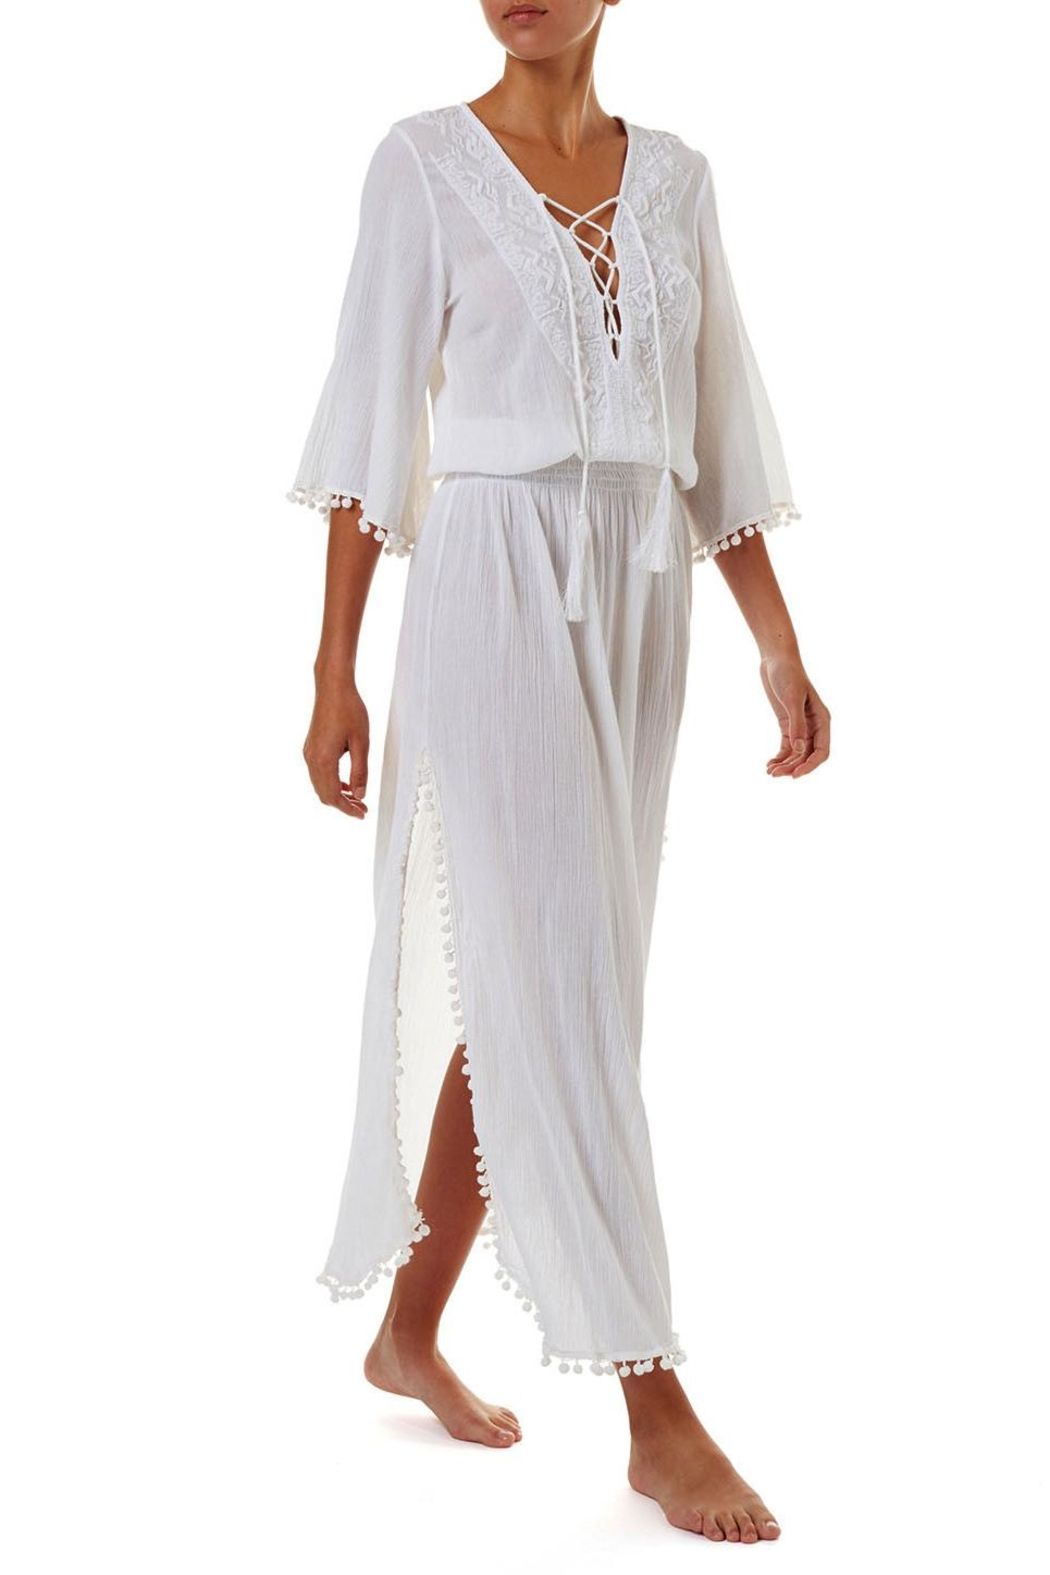 Melissa Odabash Kari Maxi Dress - Front Full Image